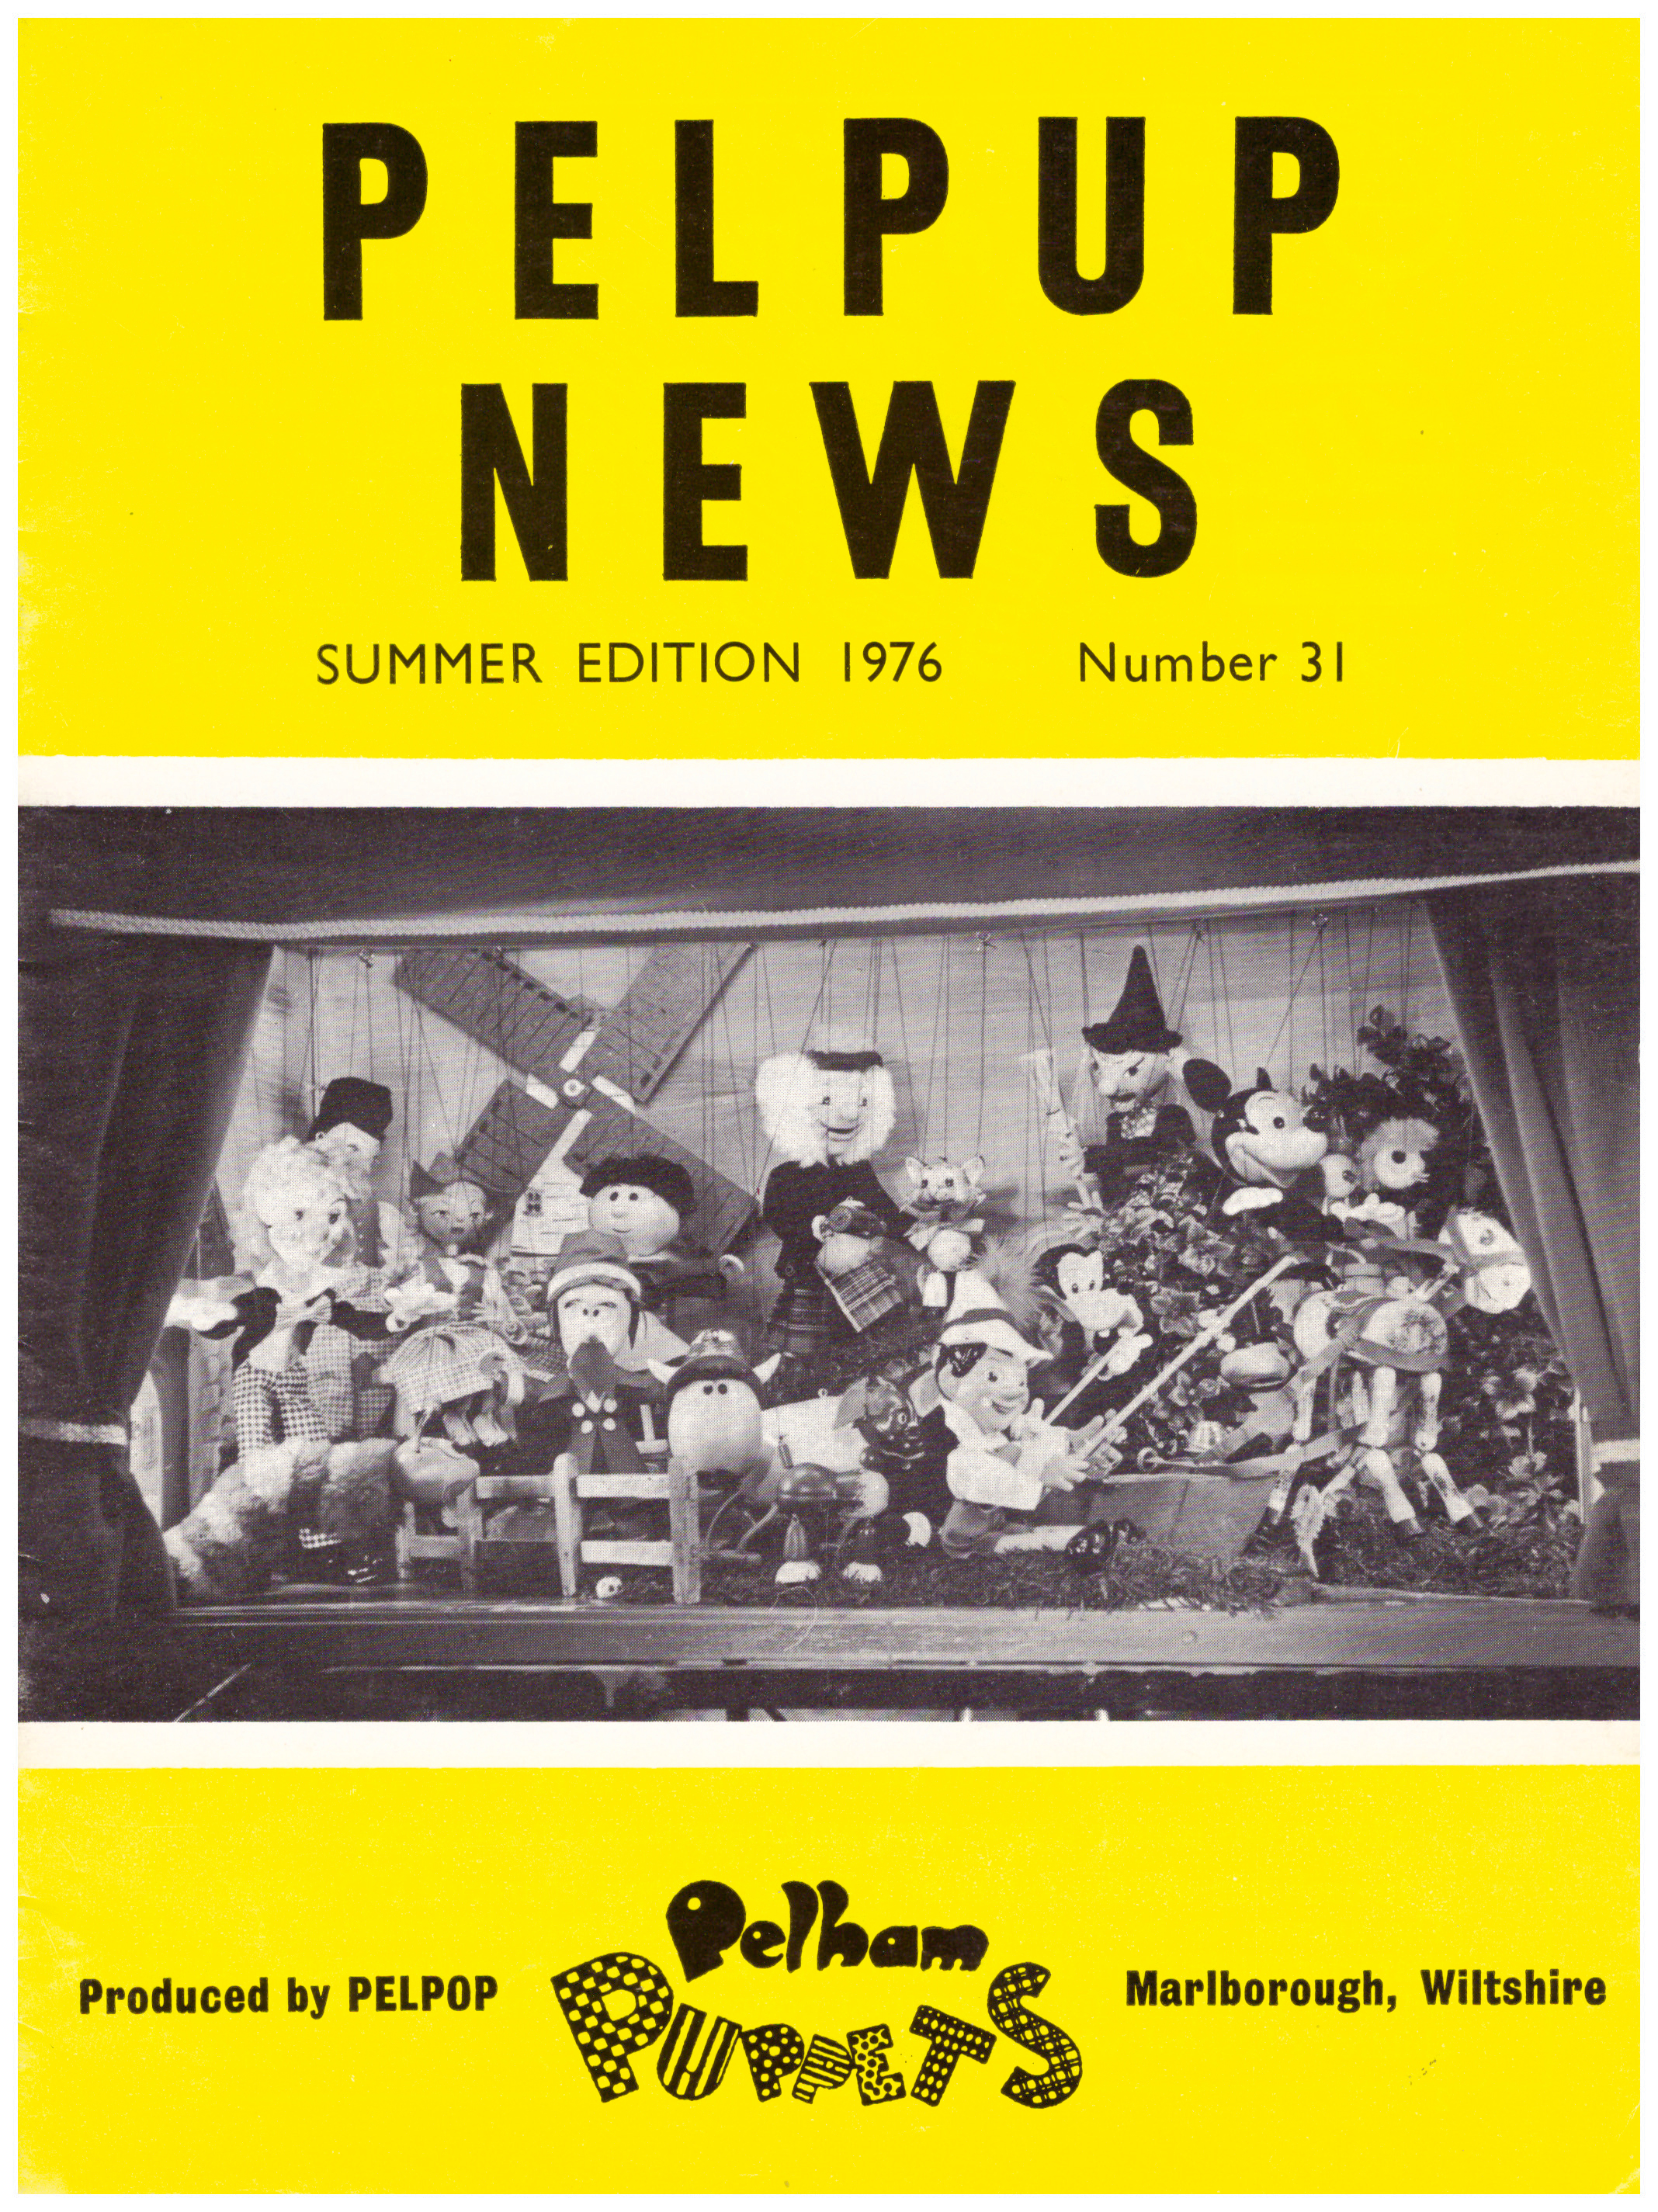 Summer Edition 1976 Number 31